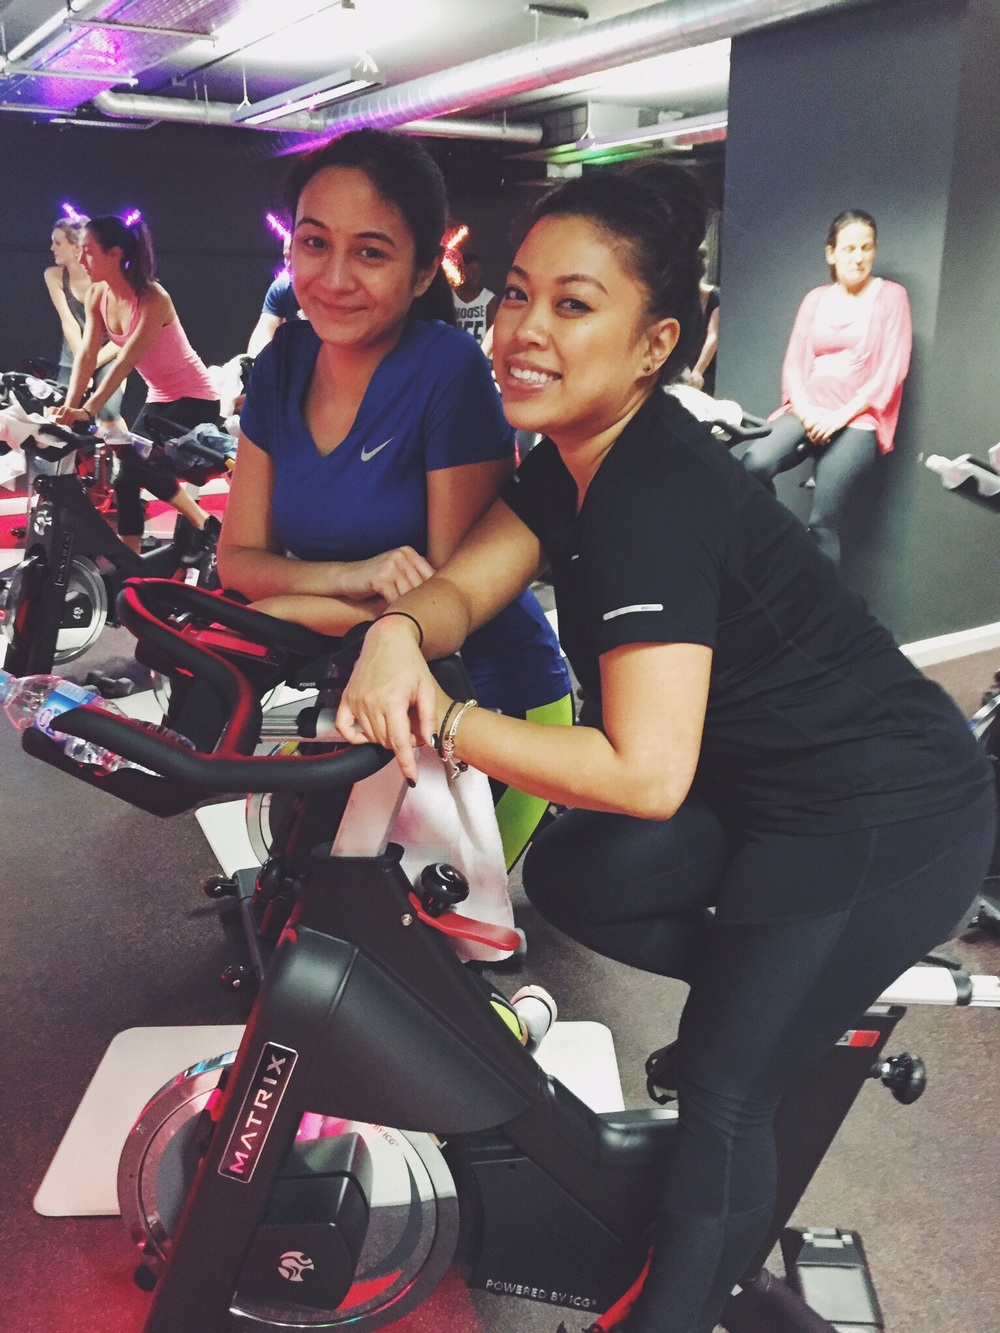 One of my first spinning classes at Edge